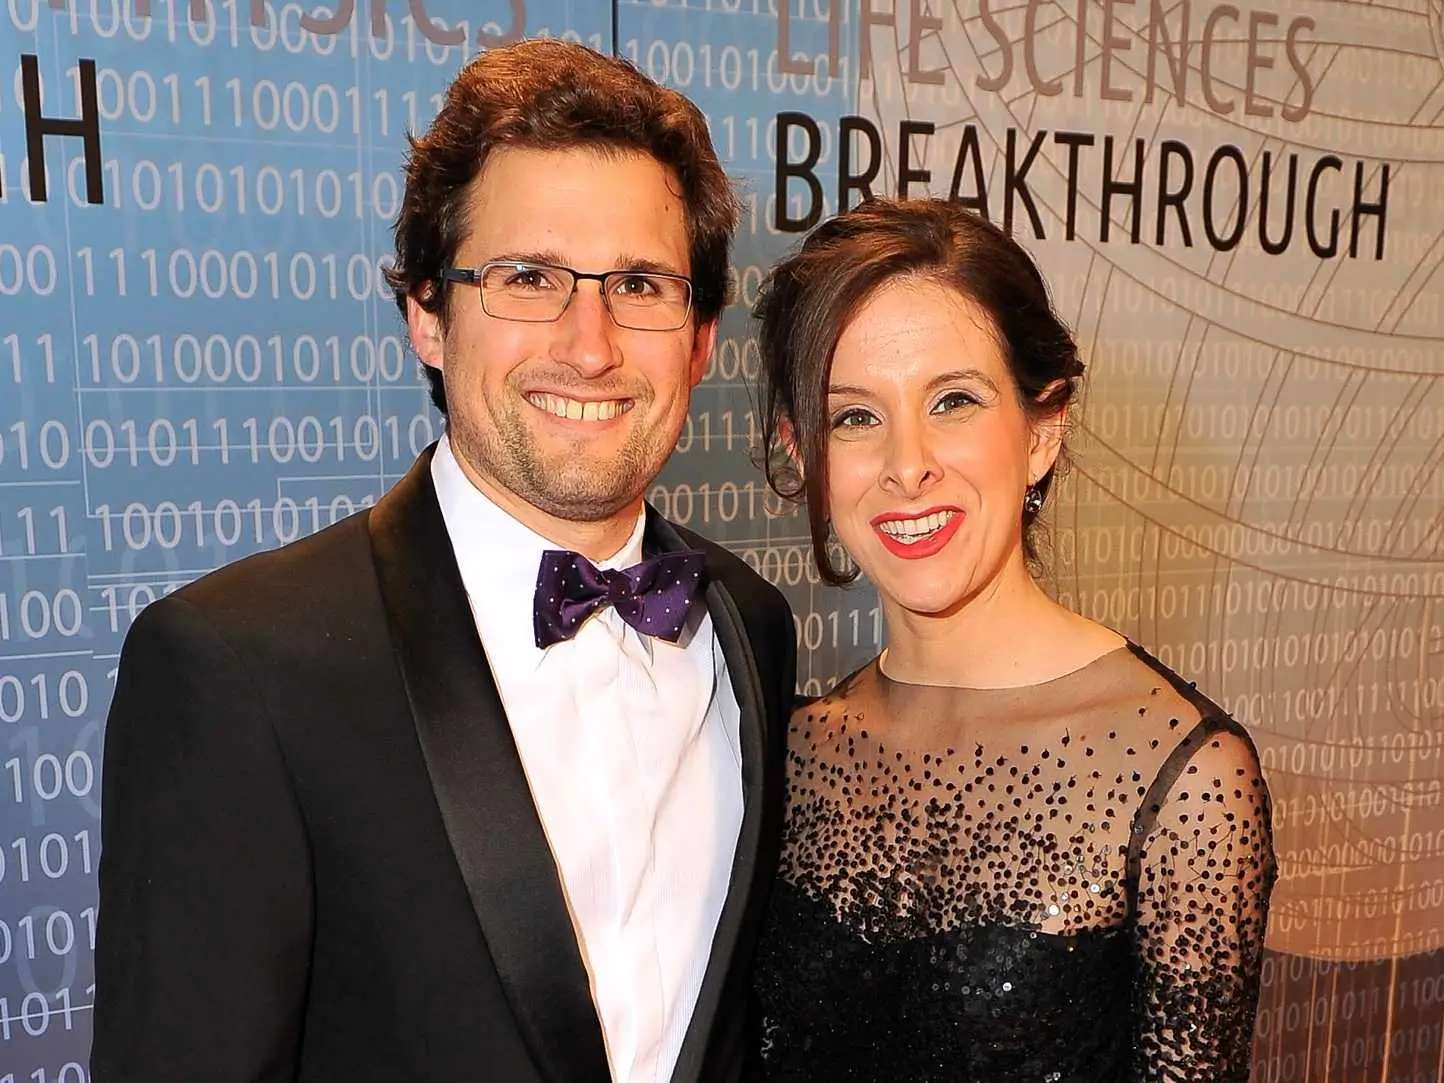 Sam and Jessica Lessin both made names for themselves in the tech industry.